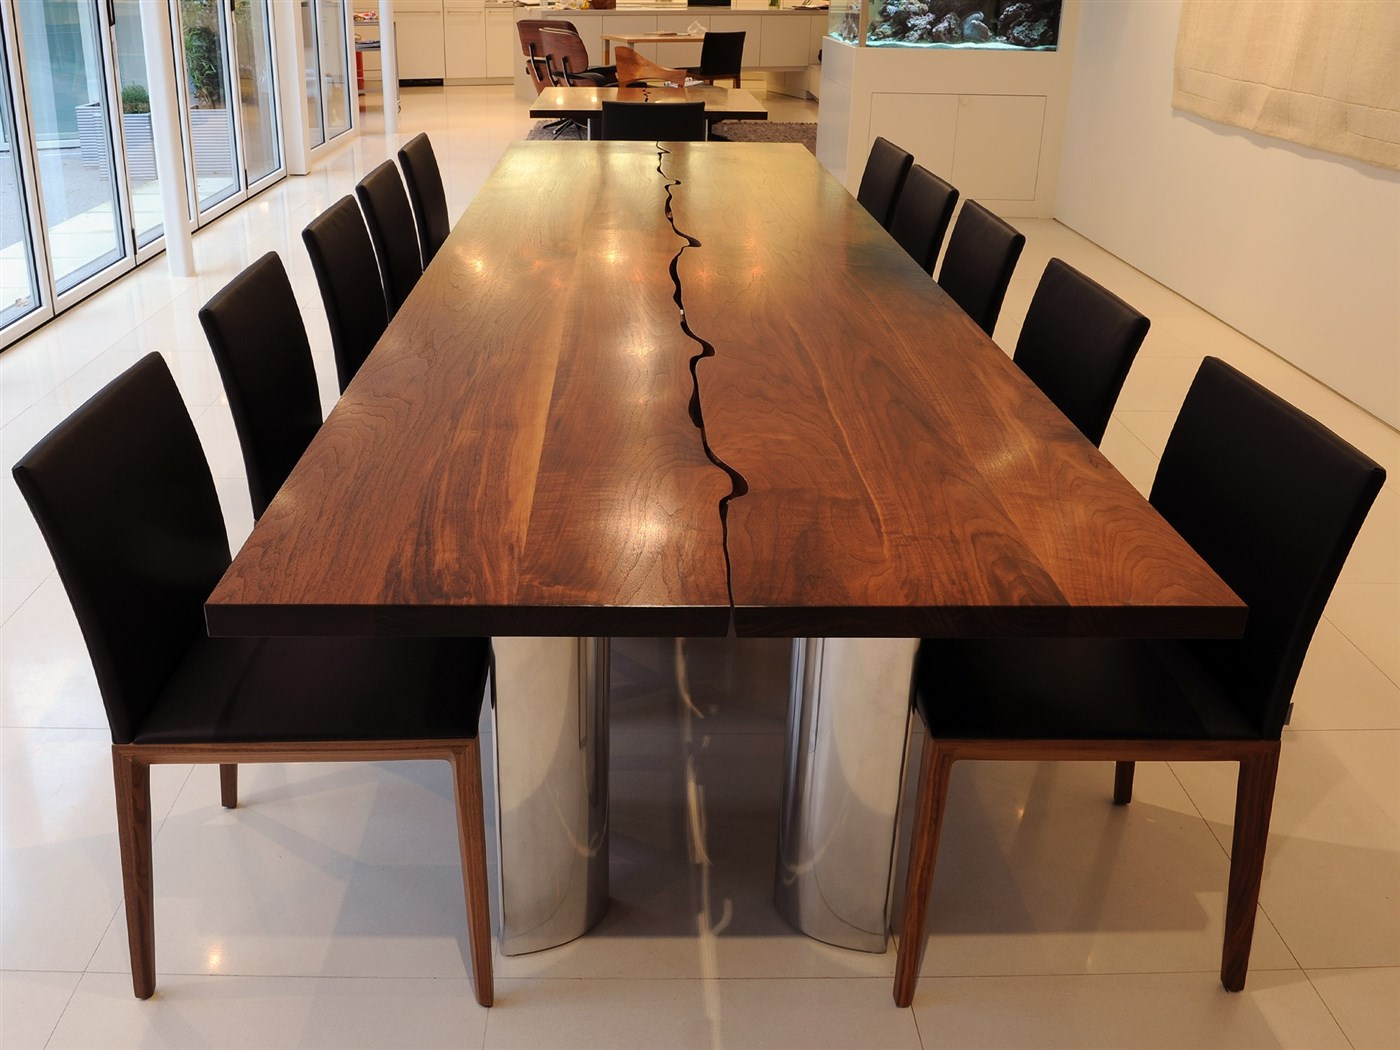 Wood modern dining table design ideas